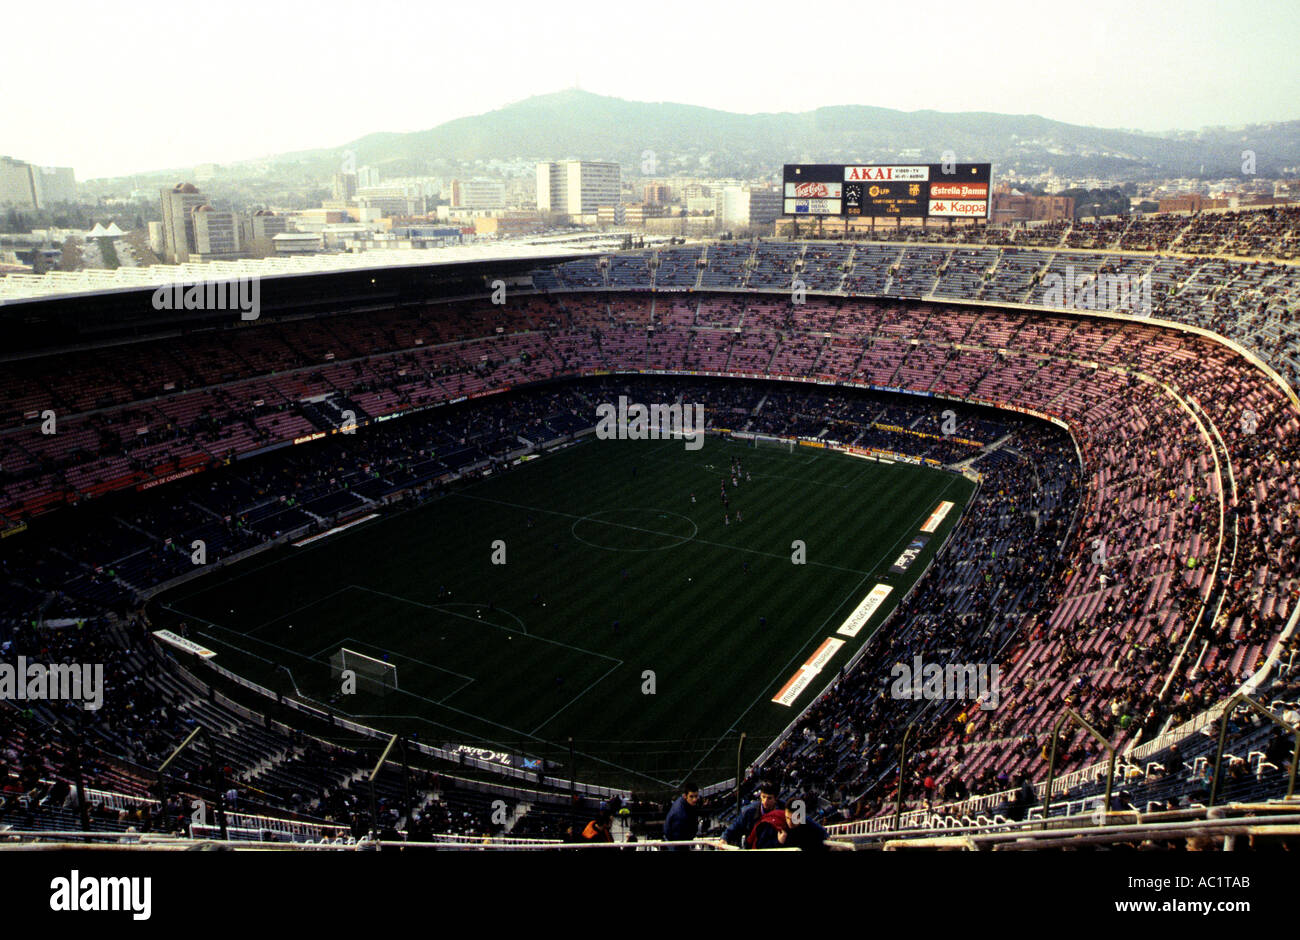 Nou Camp stadium, the largest football stadium in Europe and home of FC Barcelona, Spain. - Stock Image